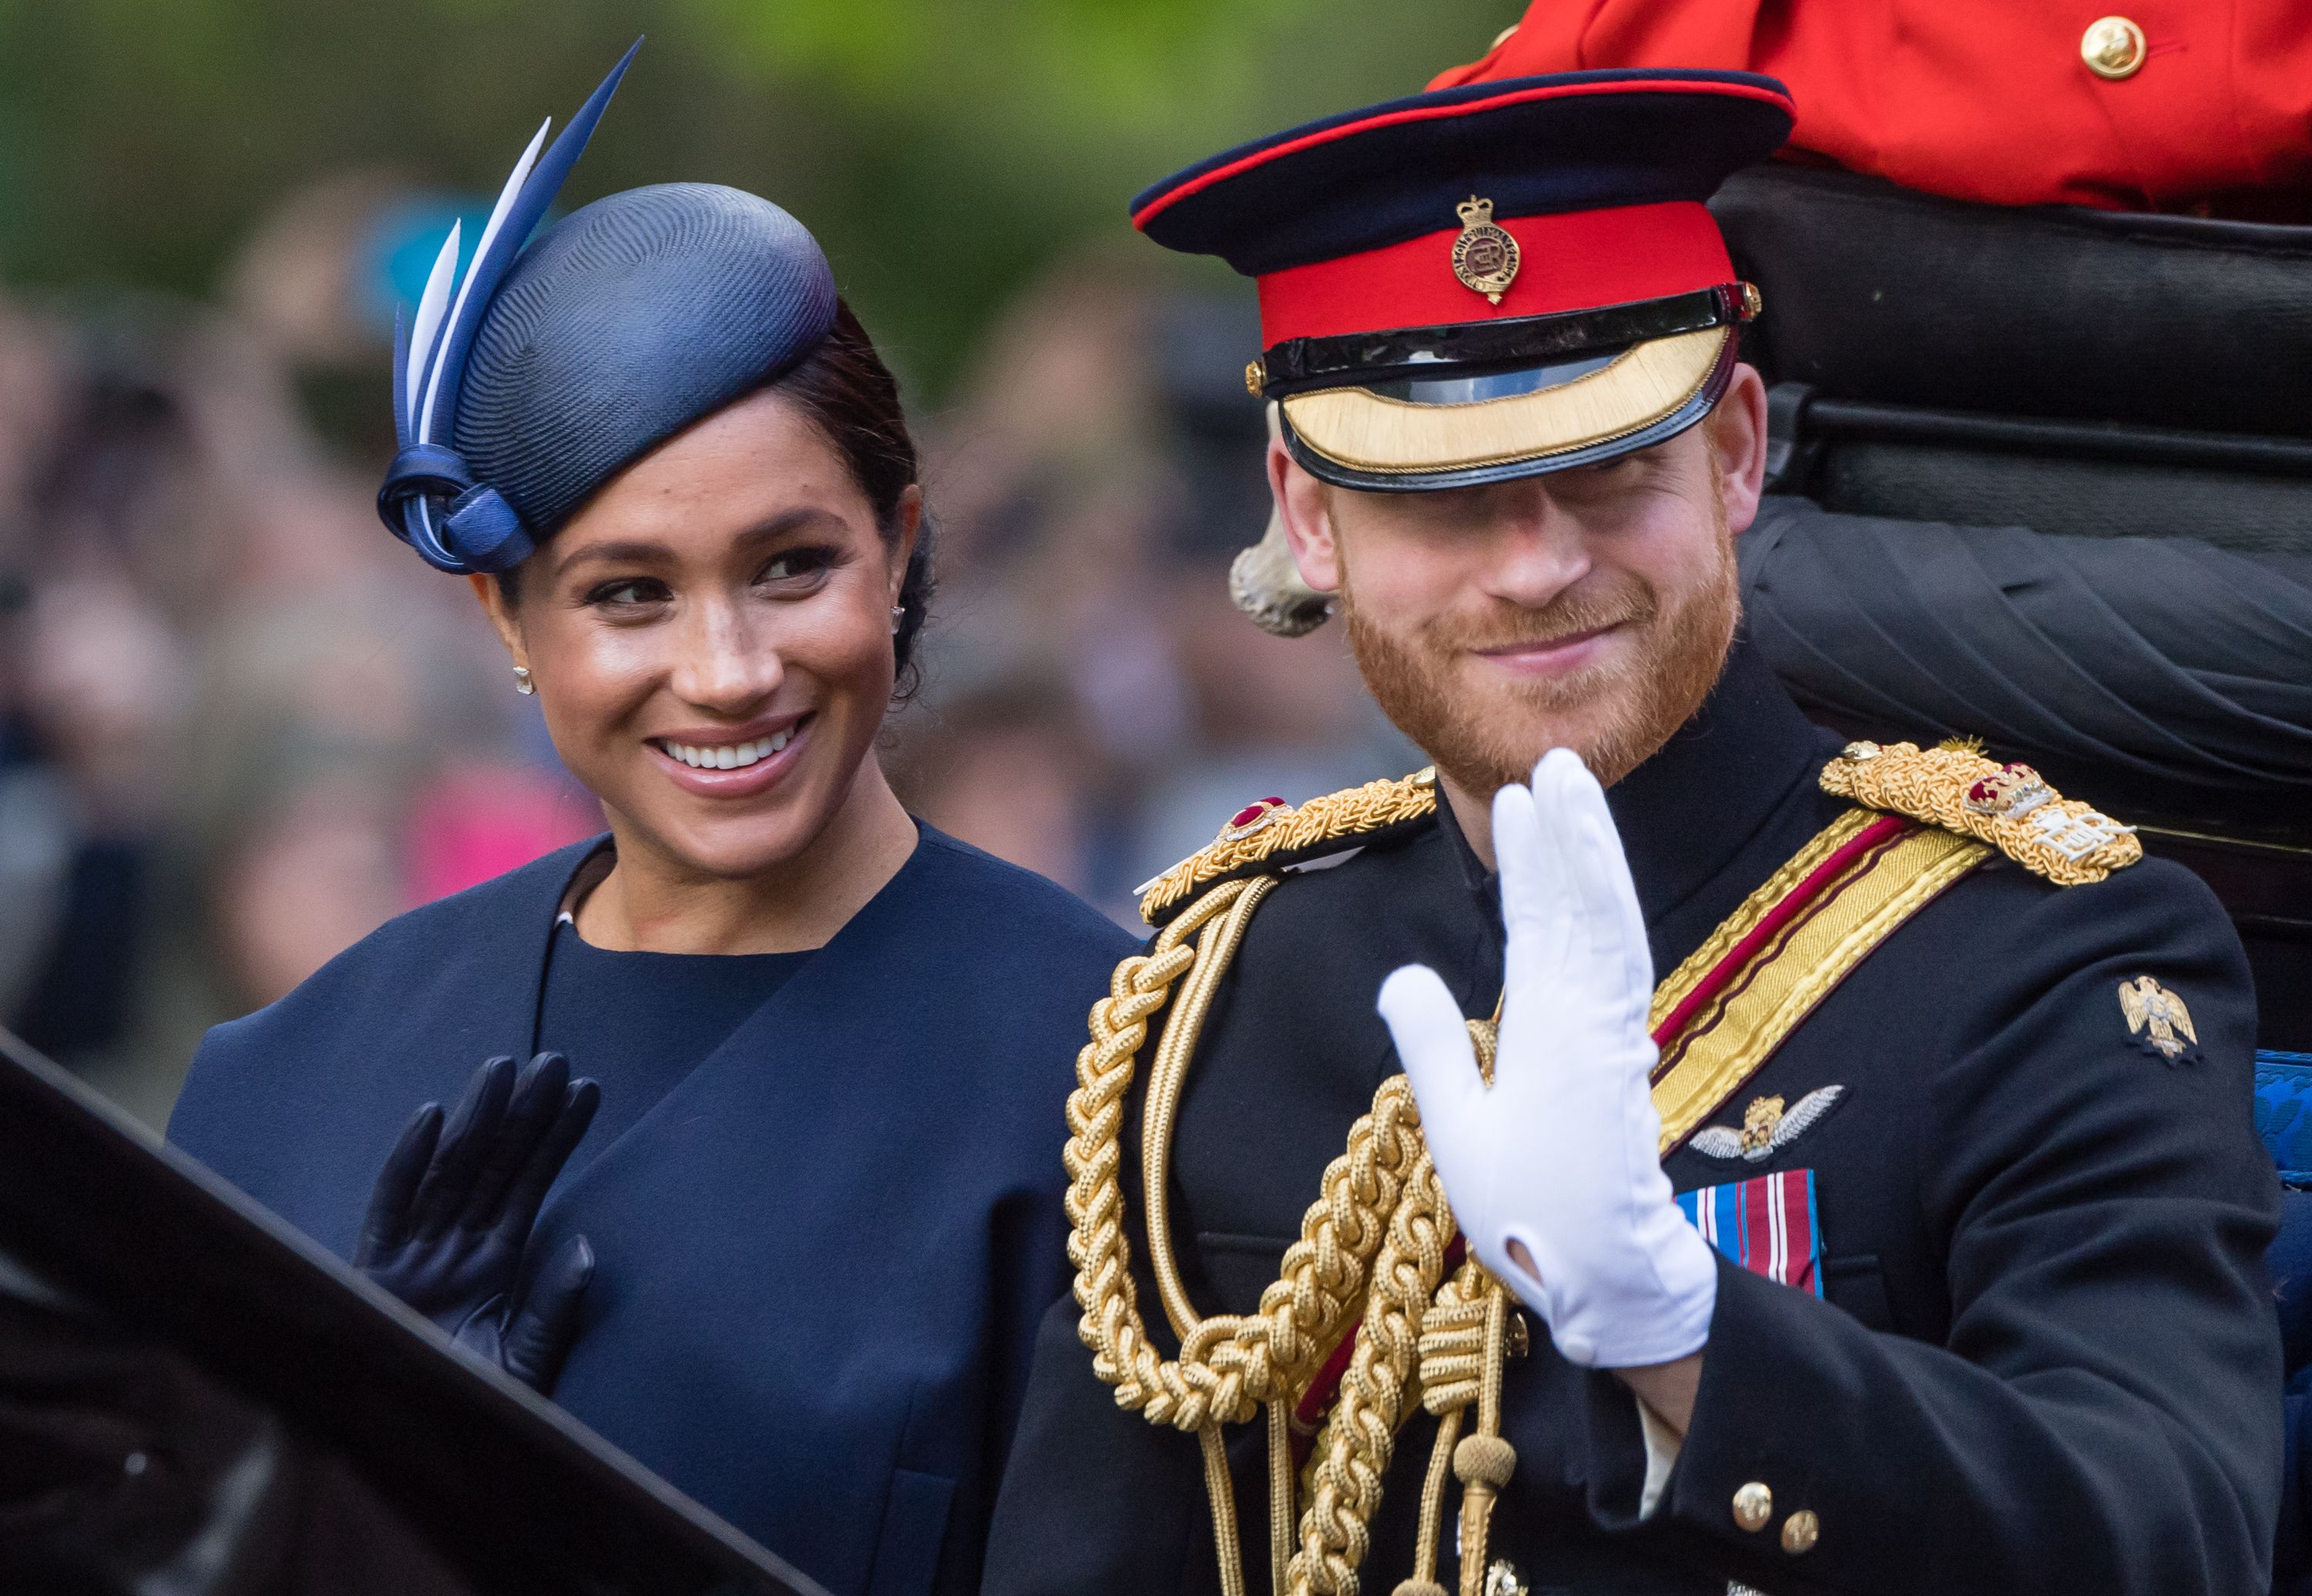 Wait, You Totally Missed Meghan Markle and Prince Harry's Son Archie at Trooping the Colour This Weekend